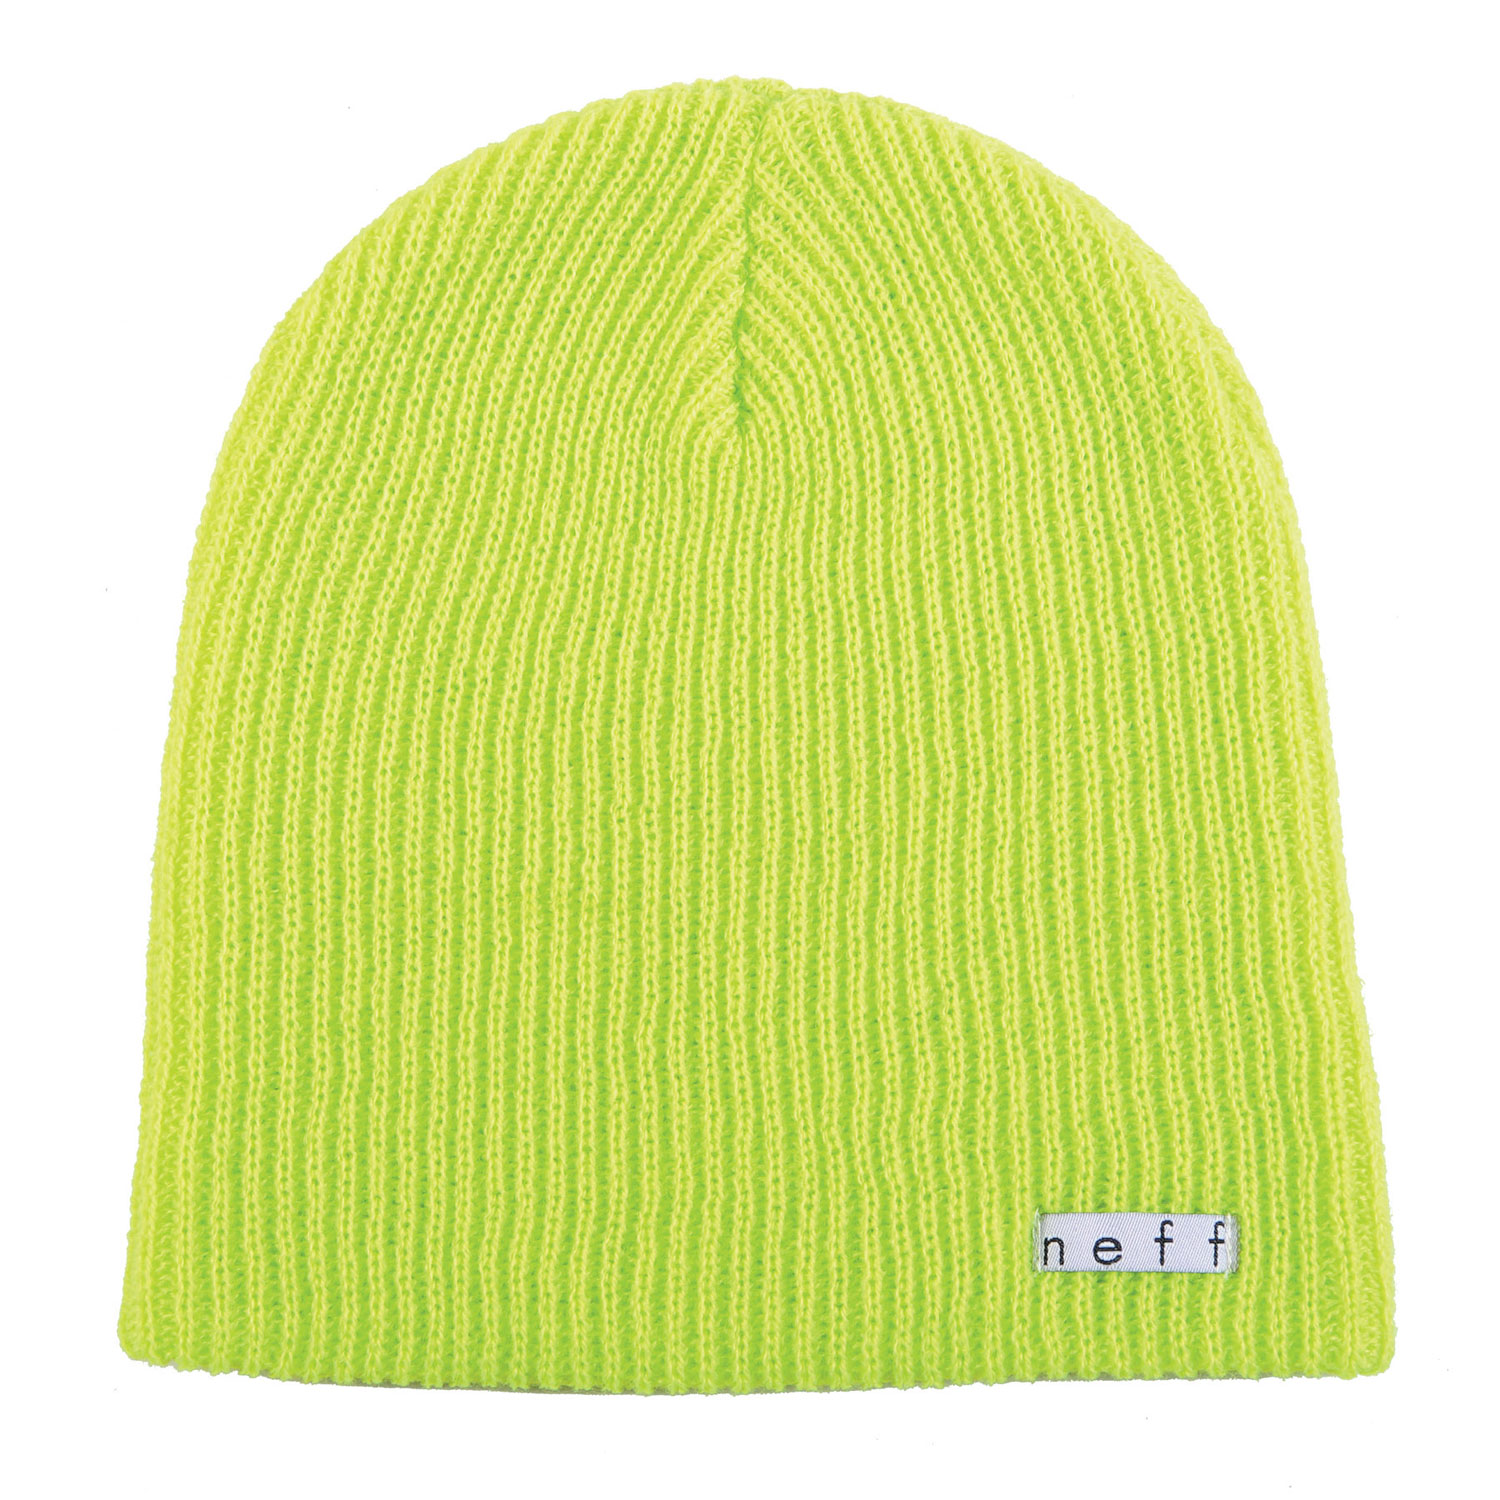 Skateboard Designed for daily use, the Neff Daily Beanie comes in a high-quality material designed to keep the heat on your head during those cold days and nights. In the streets, the Daily Beanie is durable and fashionable so that you can where it almost anywhere and with anything.Key Features of the Neff Daily Beanie:  100% Acrylic - $12.80